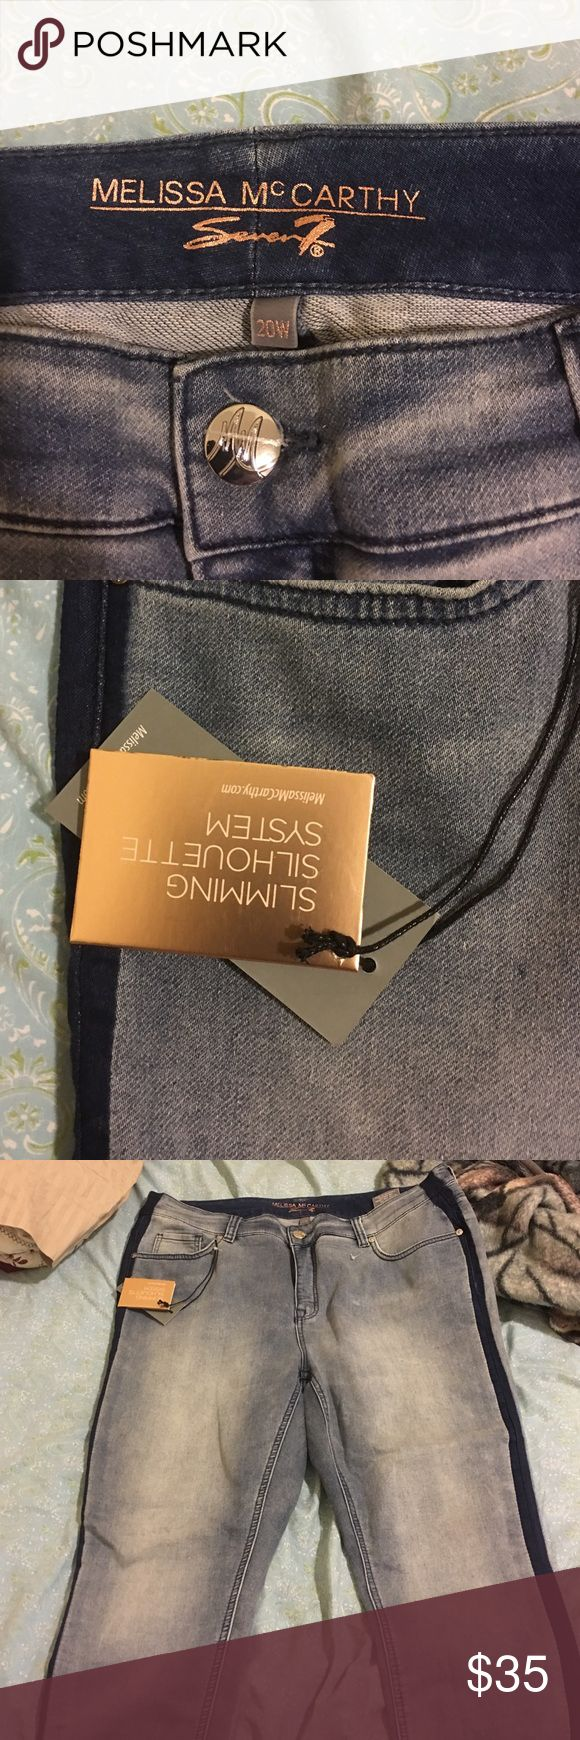 Blue jeans Melissa mc carthy jeans brand new very cute with navy blue line in the side !!! Melissa McCarthy Jeans Skinny